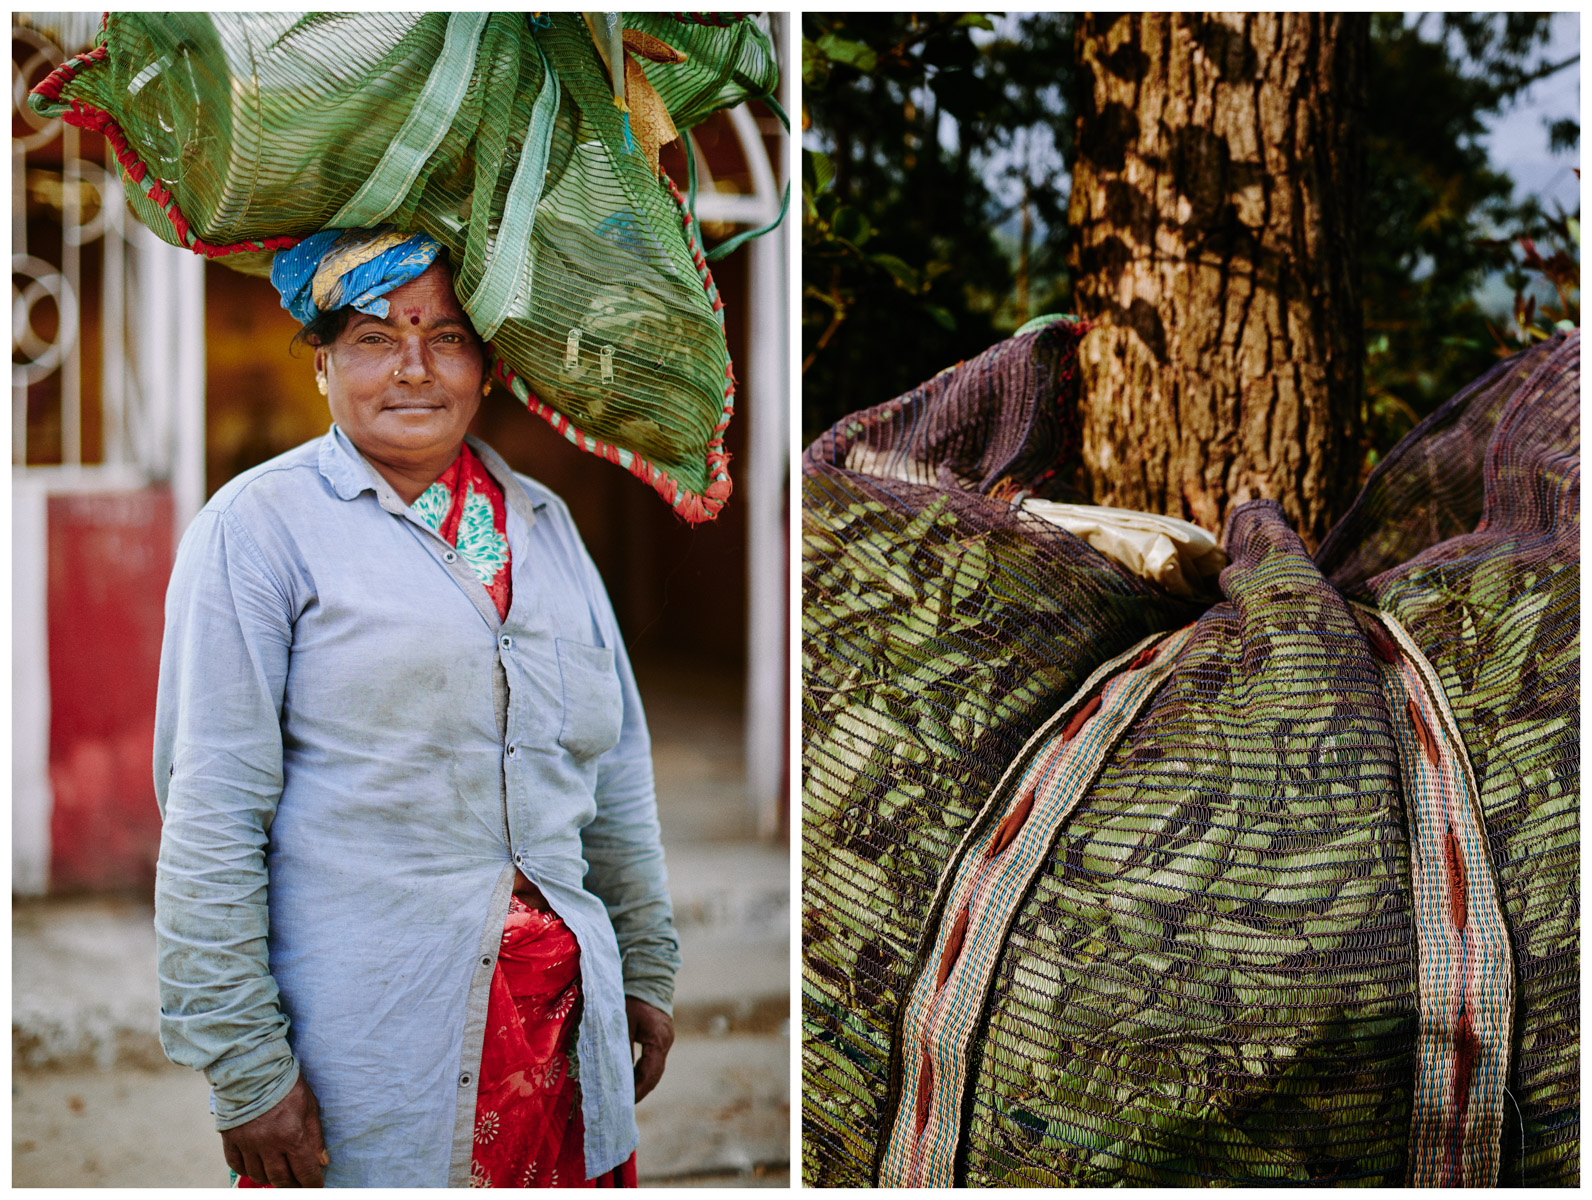 A woman carrying cooking supplies and a mesh bag filled with leaves on a tea plantation in the hills of Sri Lanka.